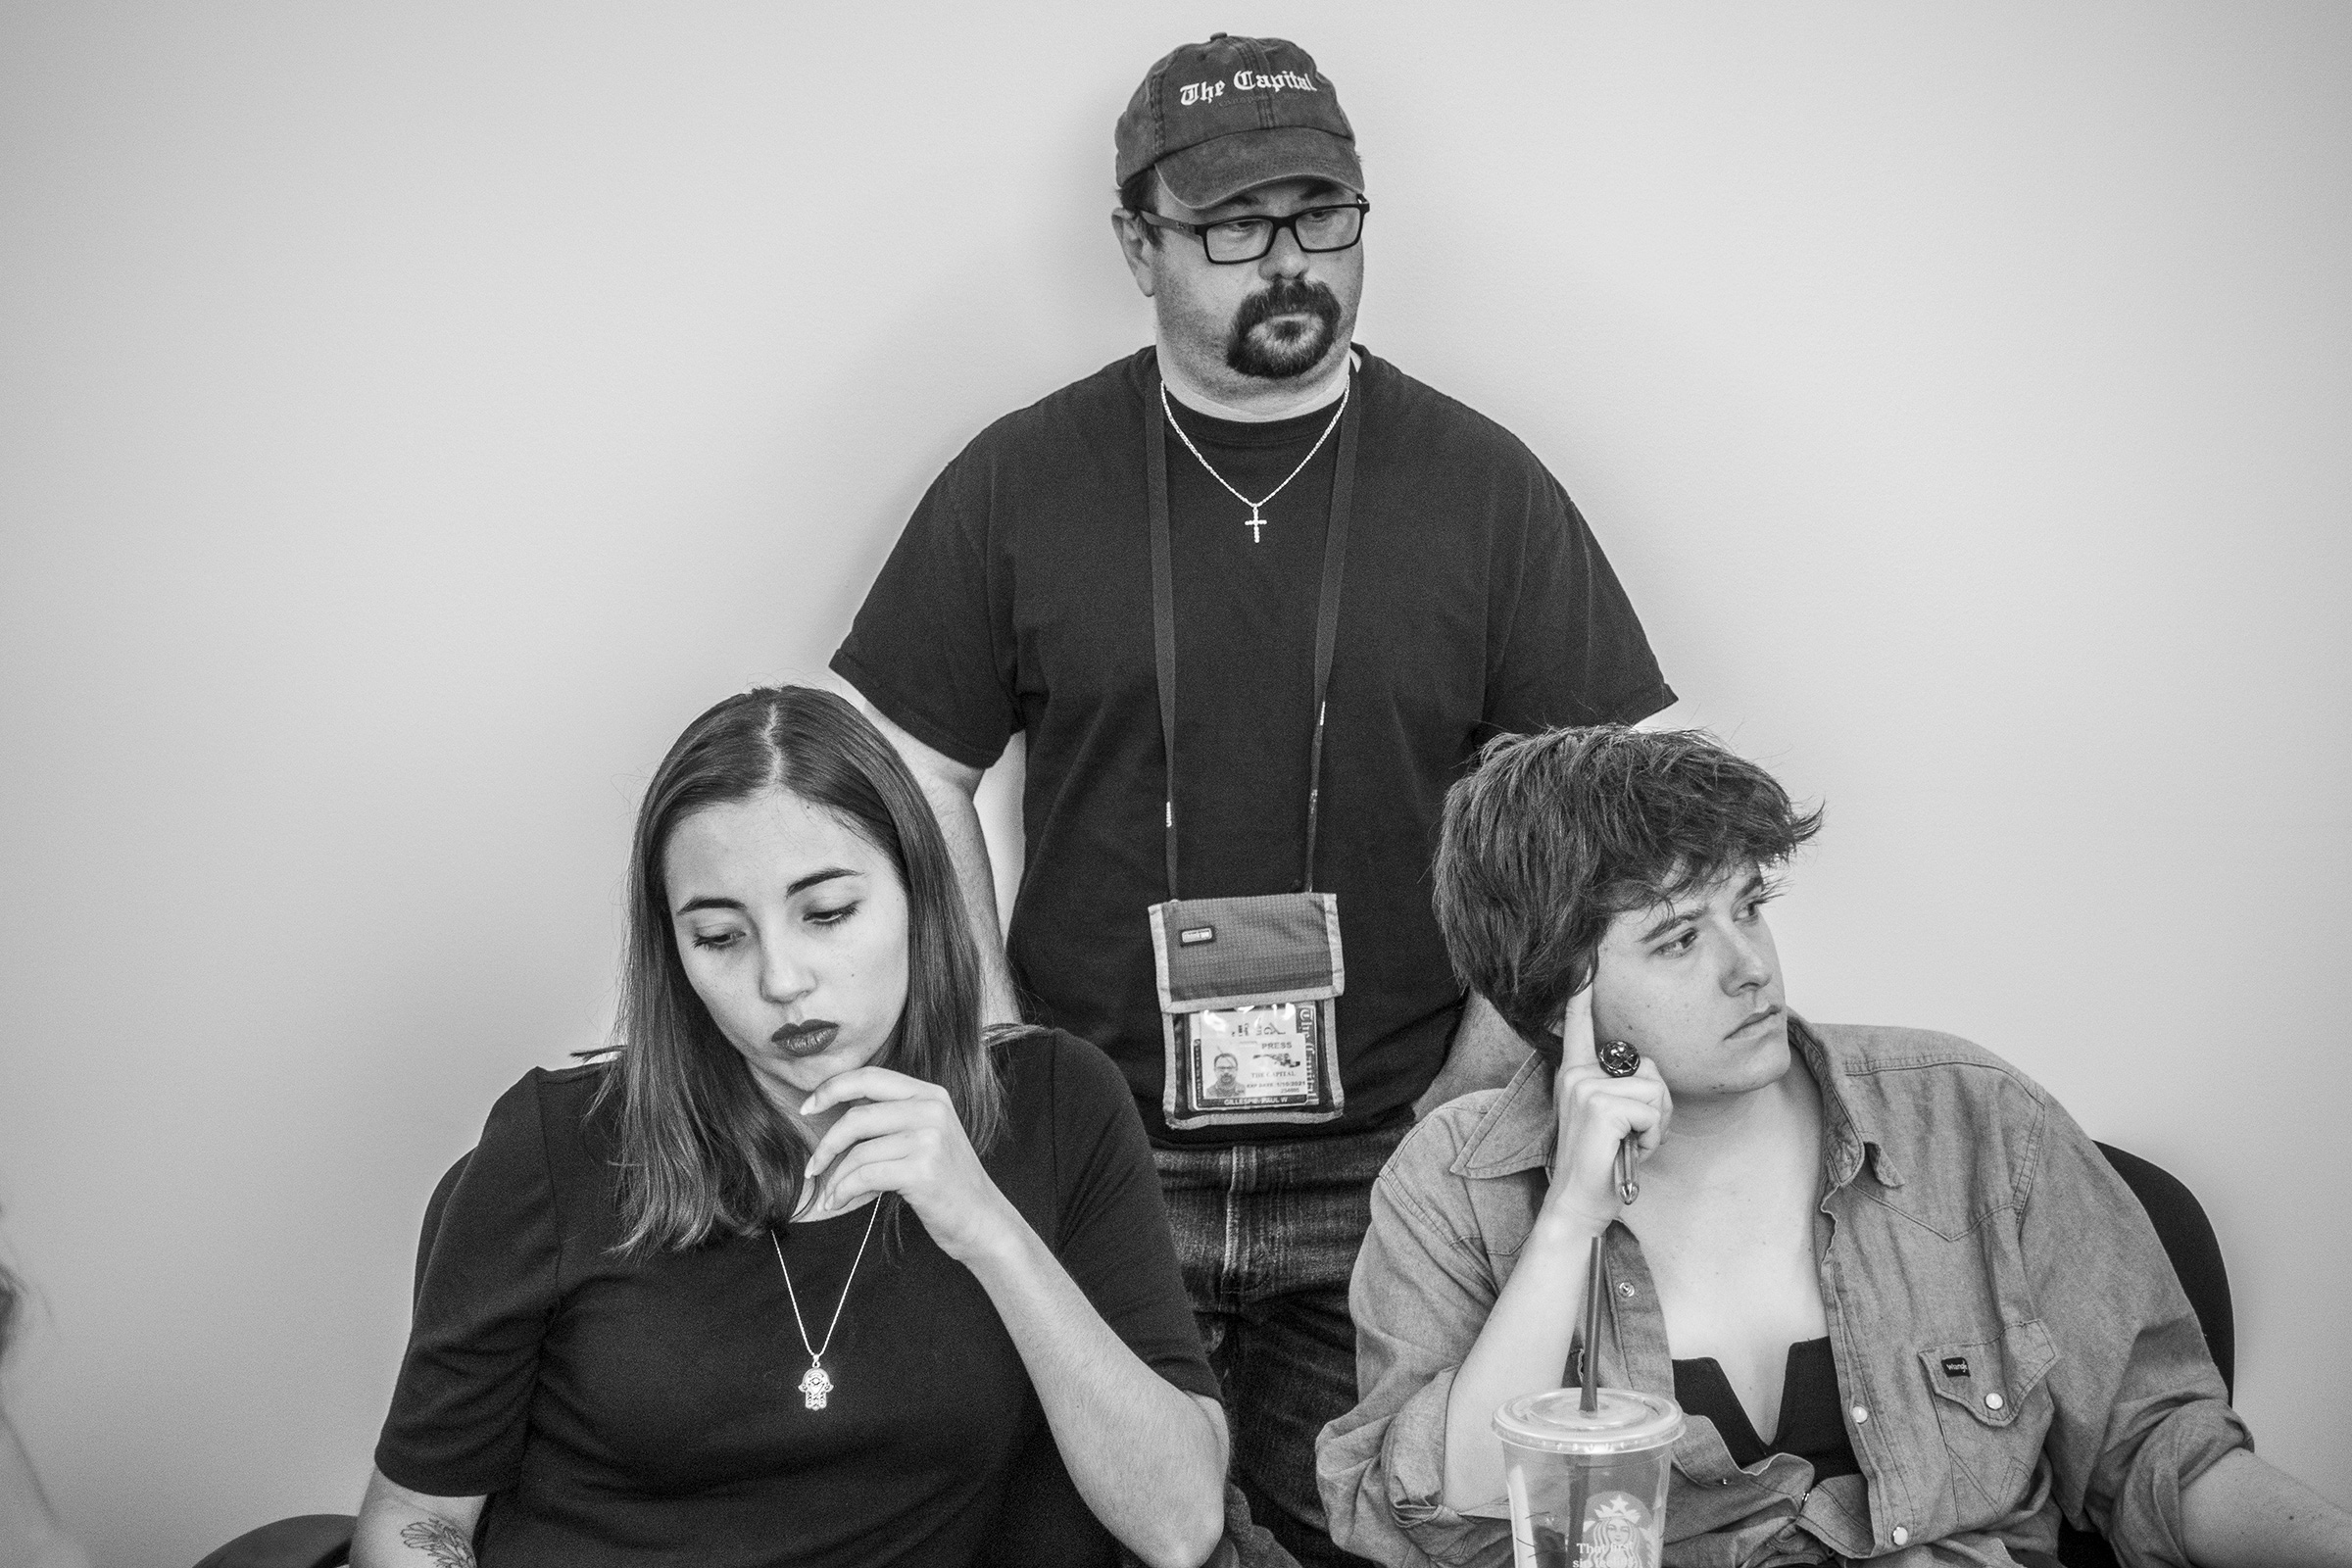 From left: Capital Gazette reporter Selene San Felice, photographer Paul Gillespie, and reporter Rachael Pacella, listen during a meeting at the newspaper, June 5, 2019.